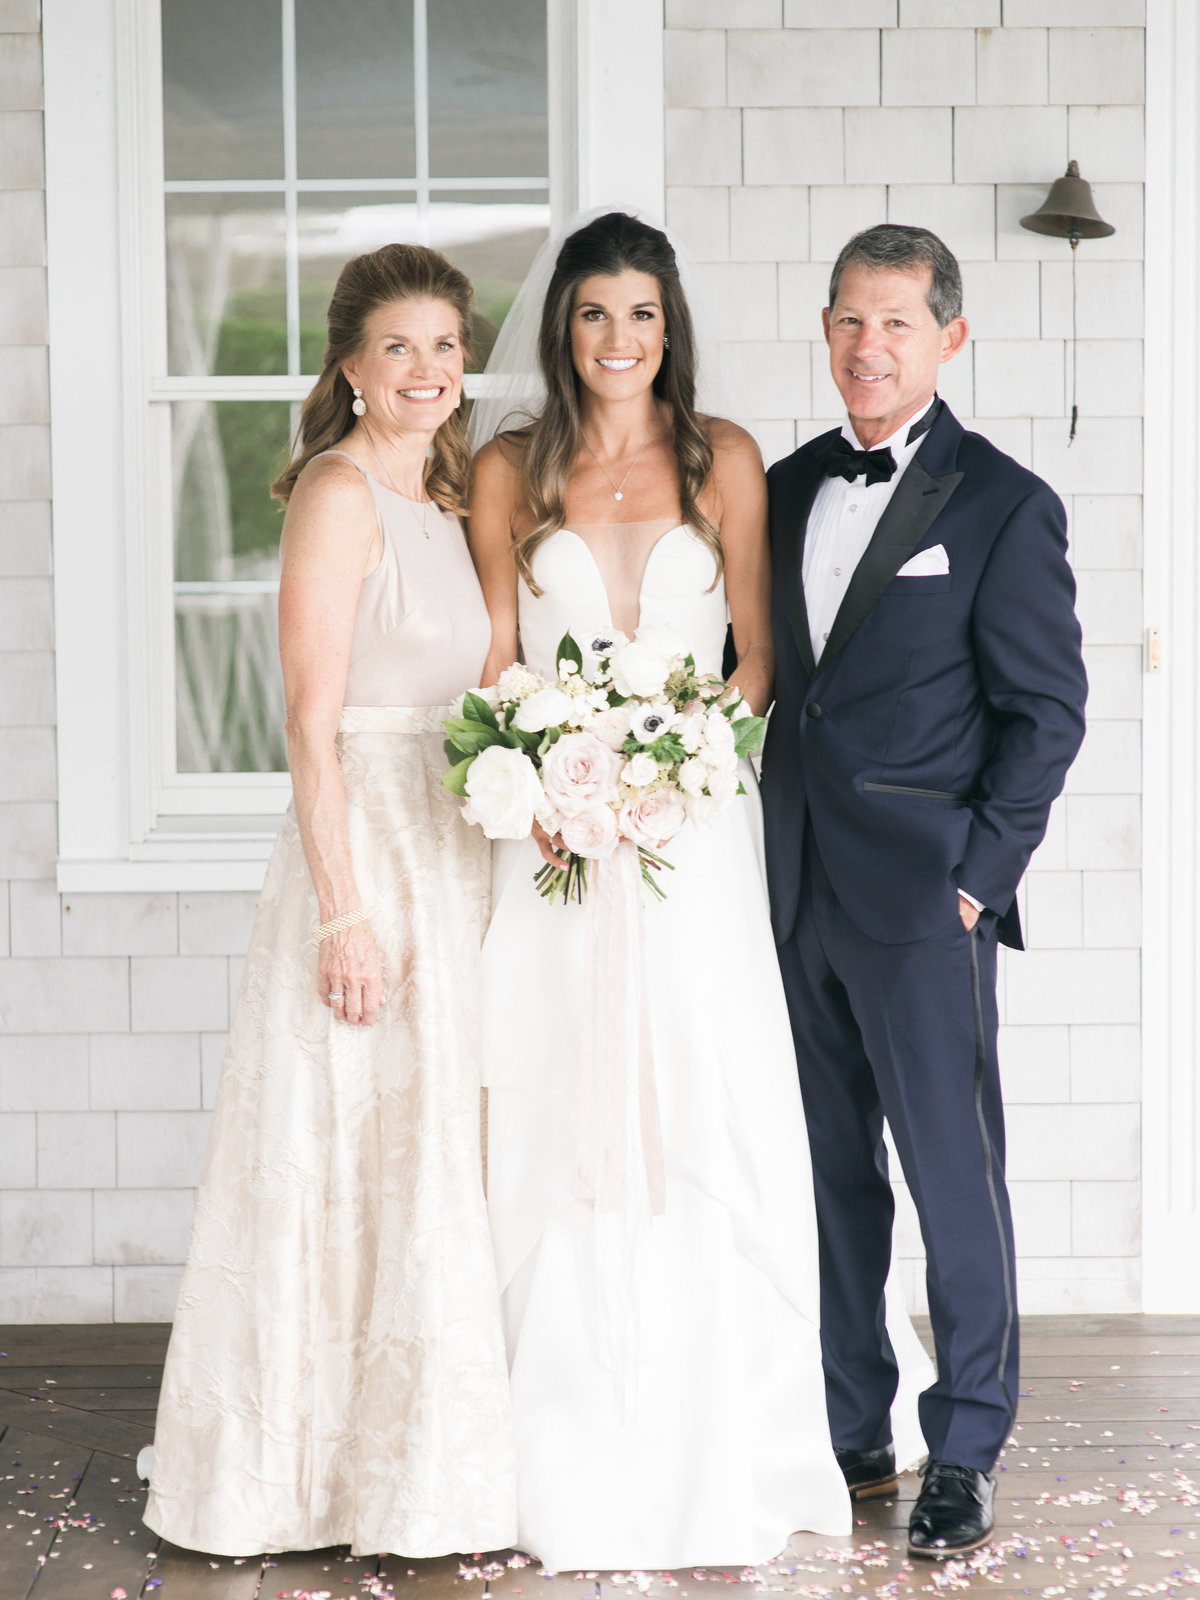 Formal parent photos for Cape Cod wedding weekend by top destination wedding planner Always Yours Events